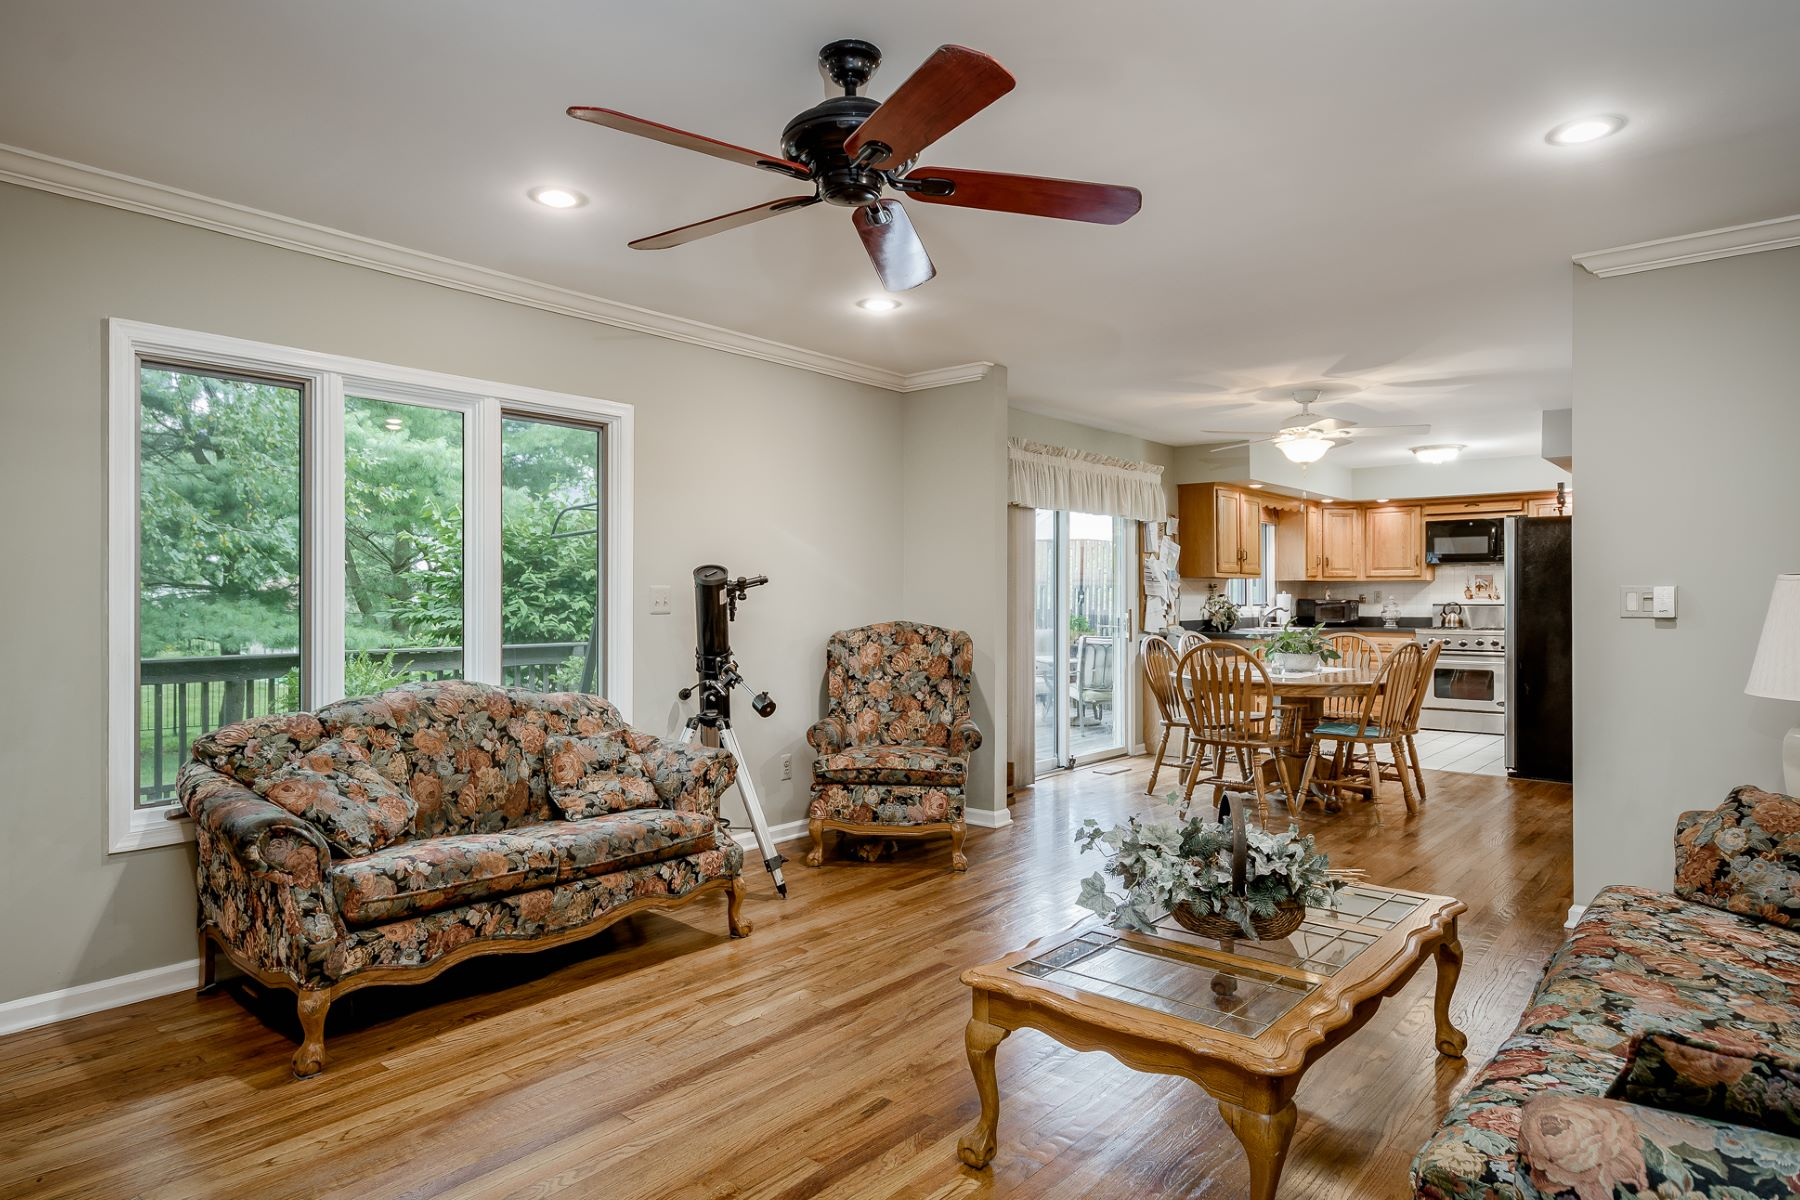 Additional photo for property listing at Classic Lines Trace Easy-Living Modernity 4 Pheasant Drive, Lawrenceville, New Jersey 08648 United States